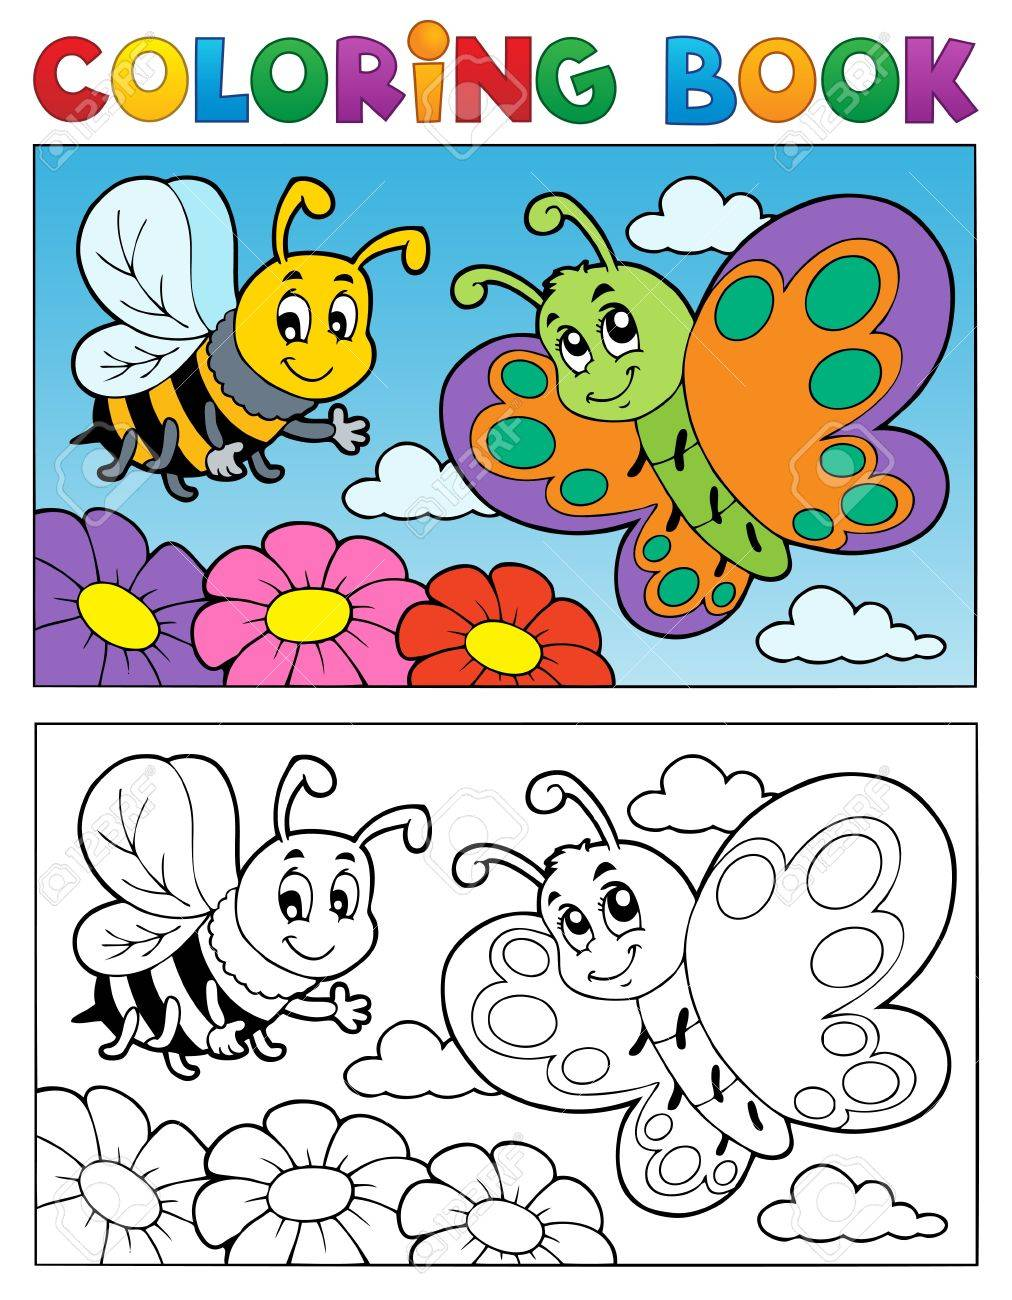 coloring book butterfly theme 2 vector illustration royalty free